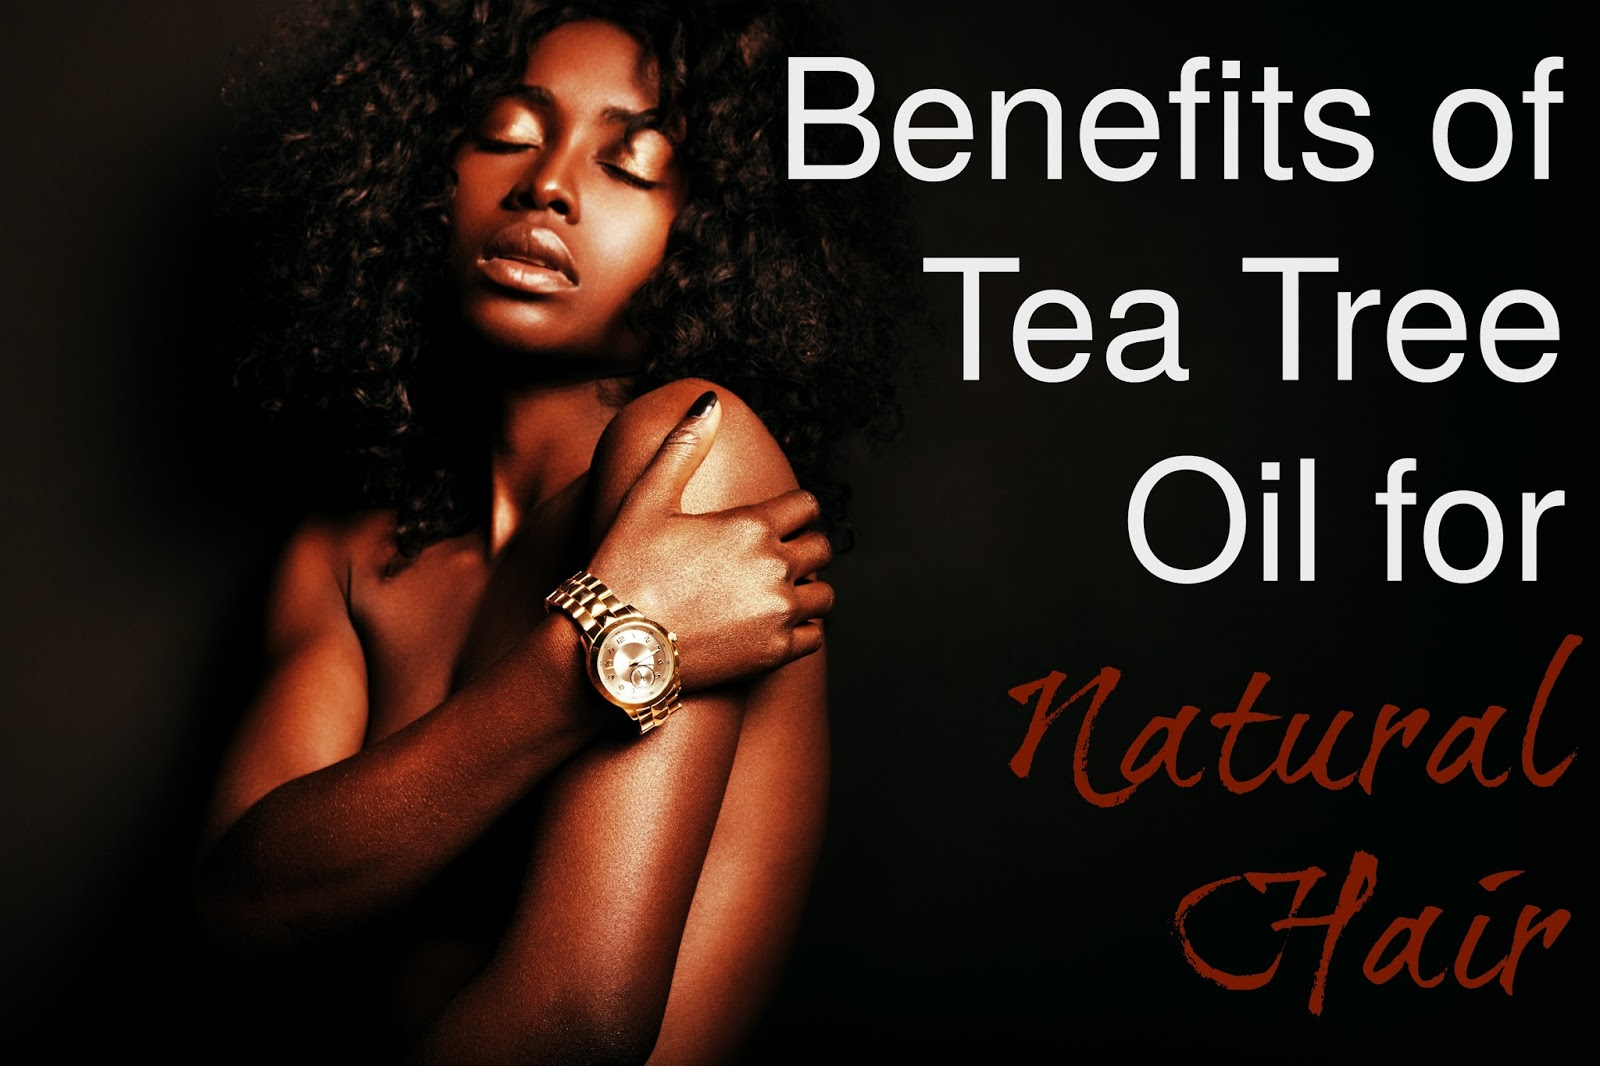 Tea Tree oil is a natural healing agent but it has several uses for hair and scalp too. Check out the long list of benefits for your natural hair.